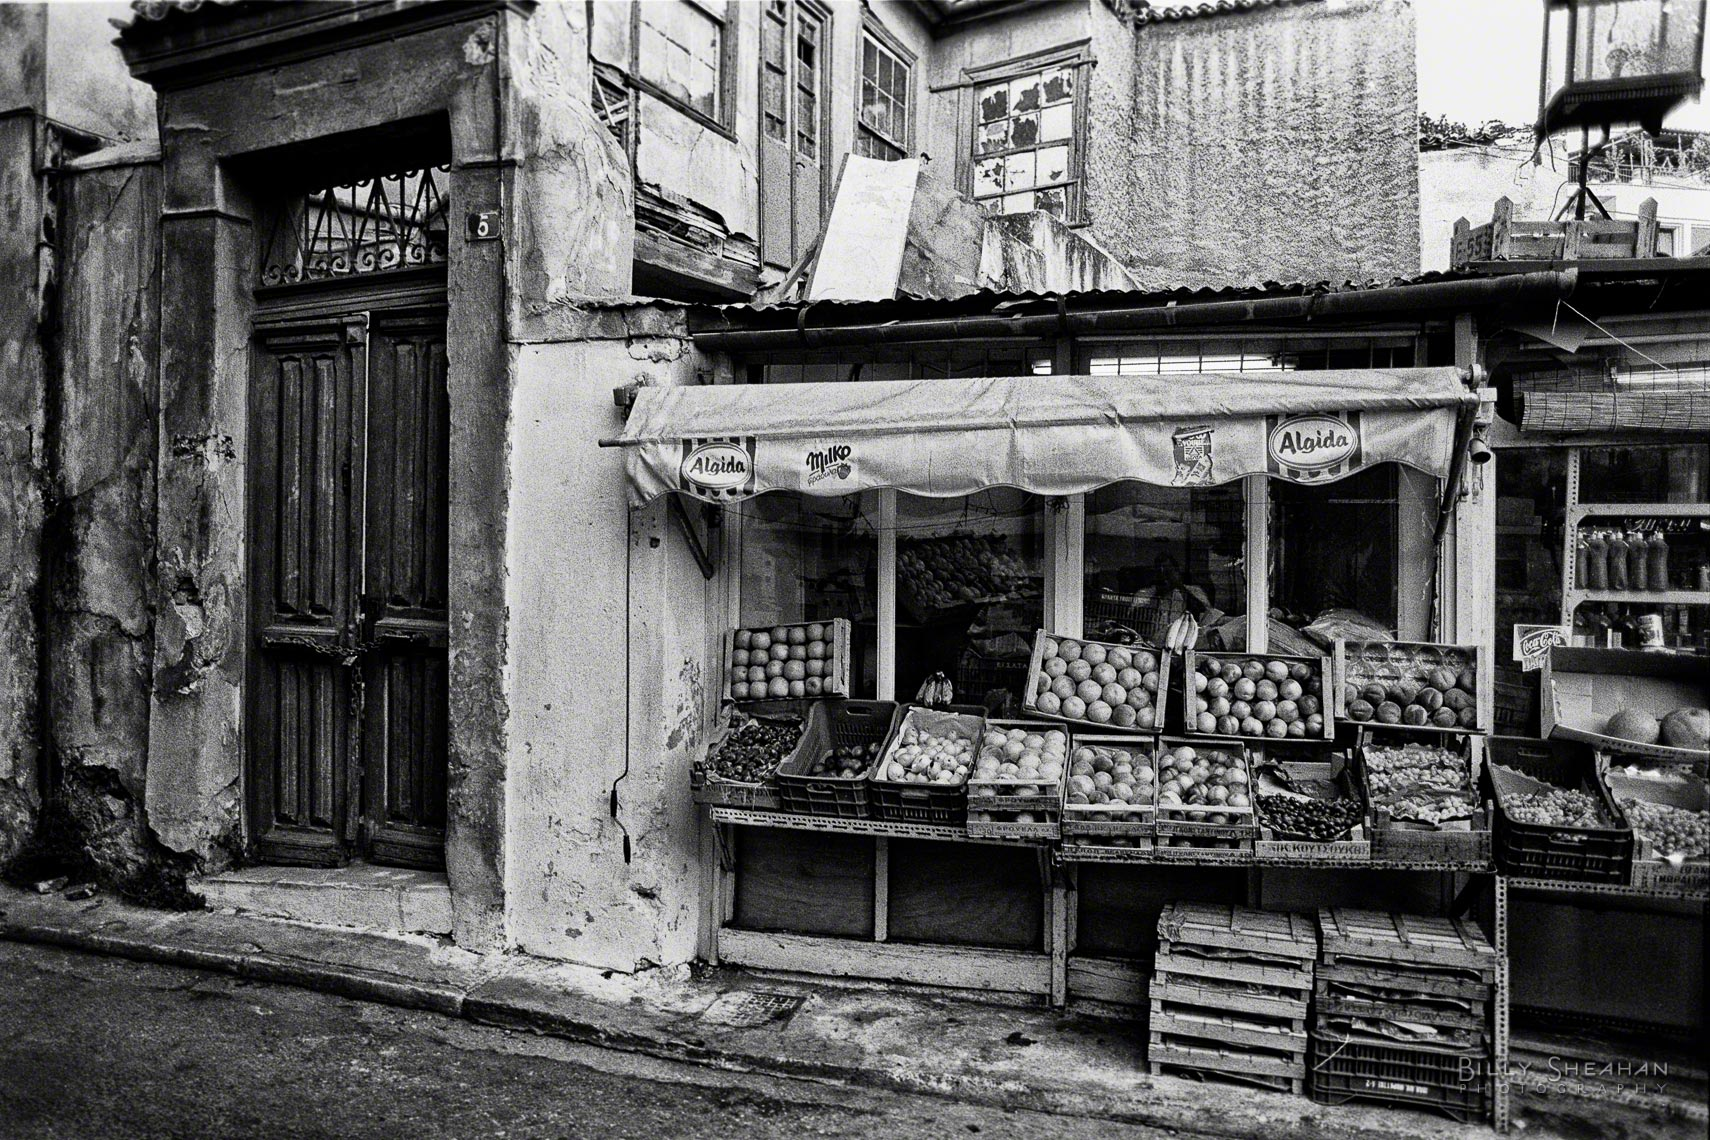 Athens_Fruit_Stand_Greece-325_24_2_D.jpg